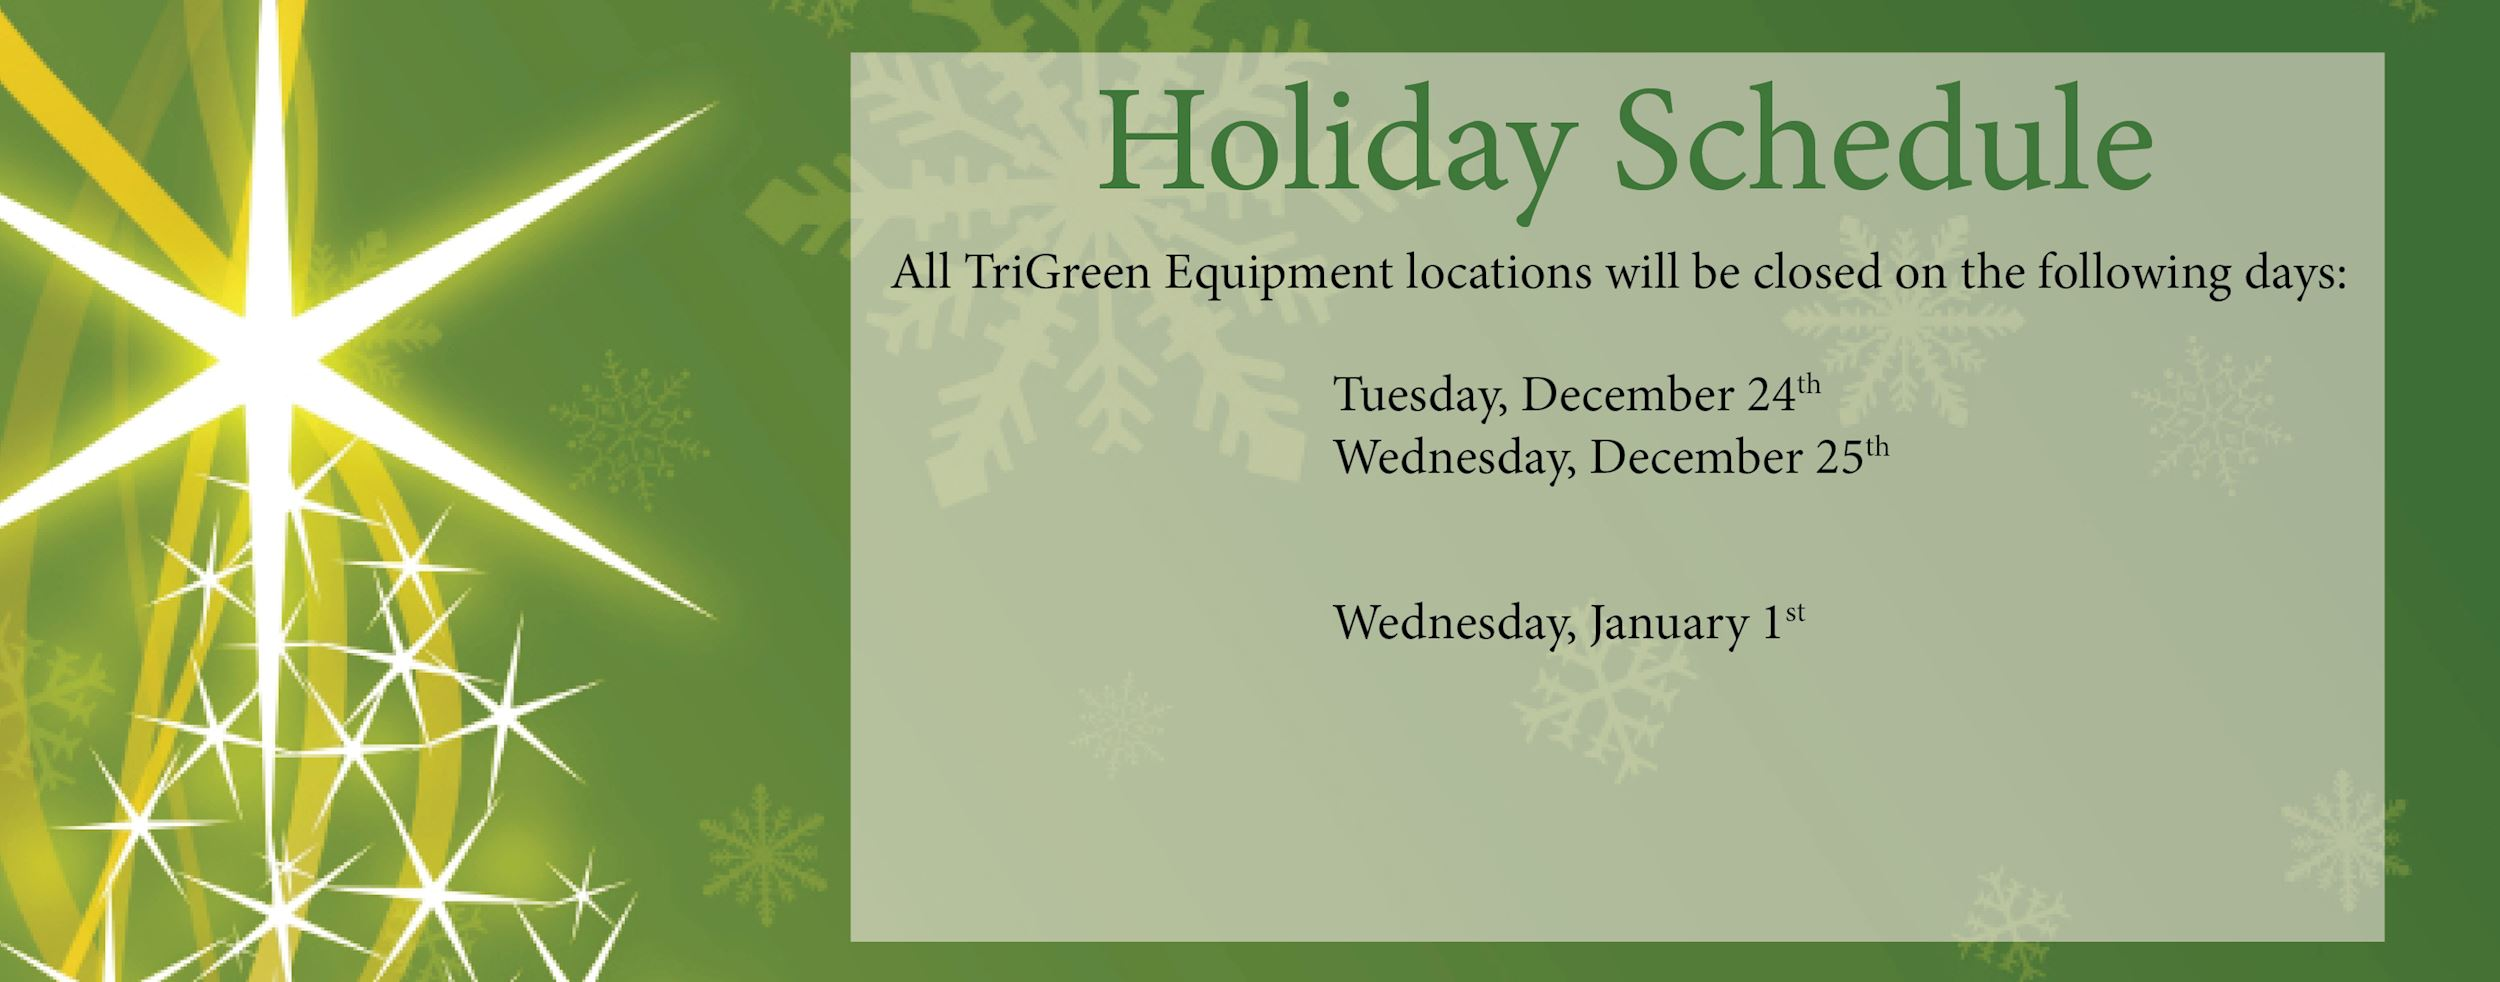 All TriGreen Locations will be closed December 24 and 25. Along with January 1, 2020